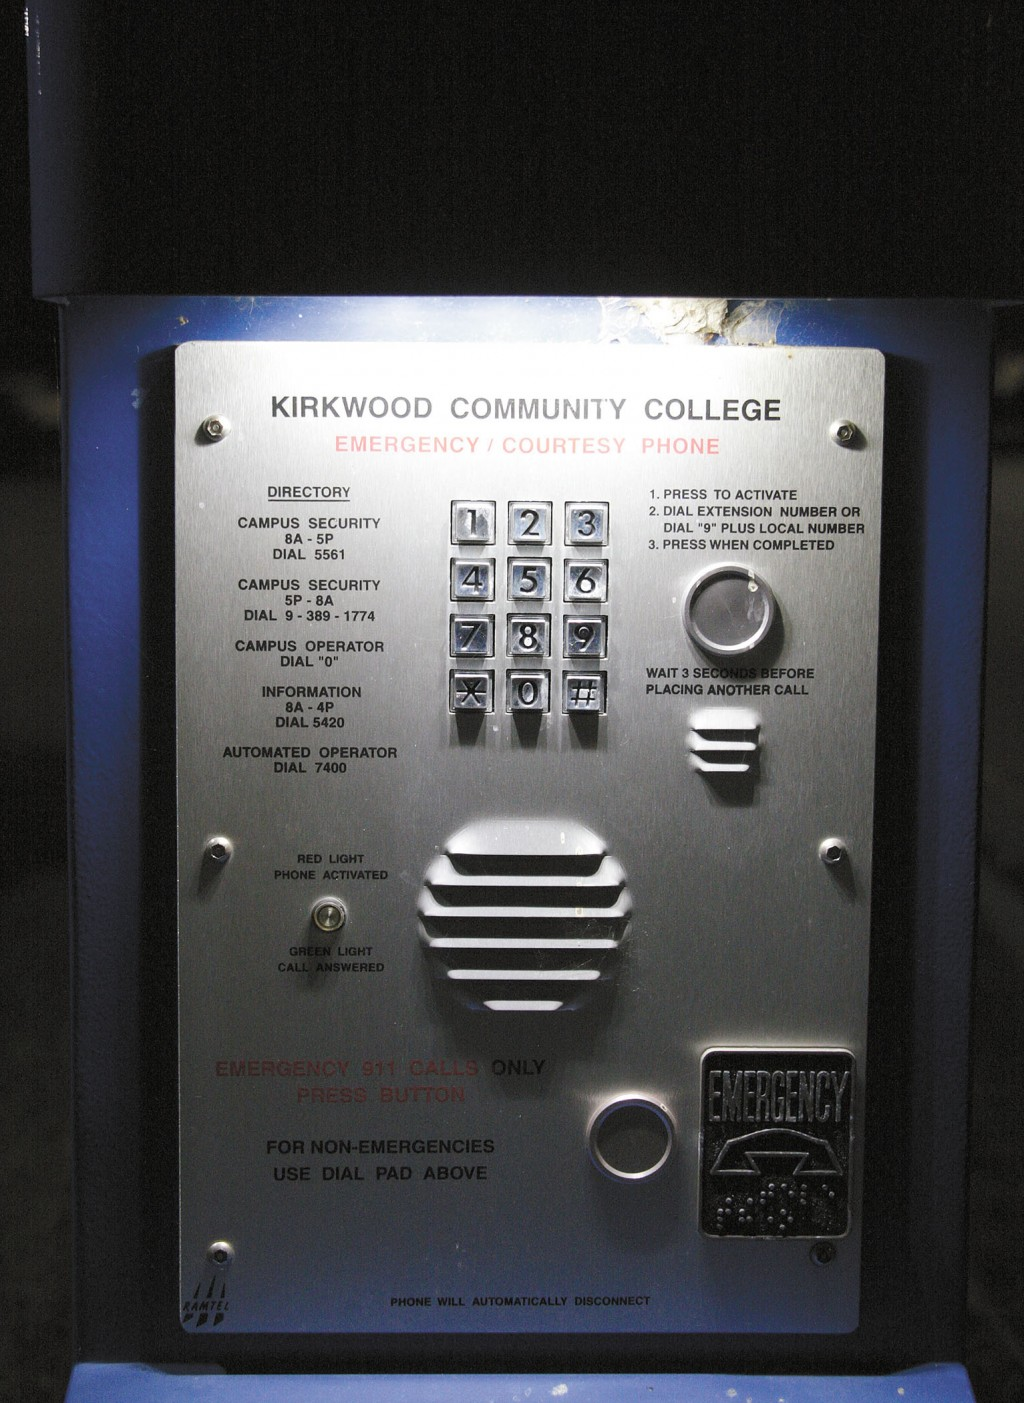 Kirkwood Community College Campus Map.Help At The Push Of A Button Kirkwoodstudentmedia